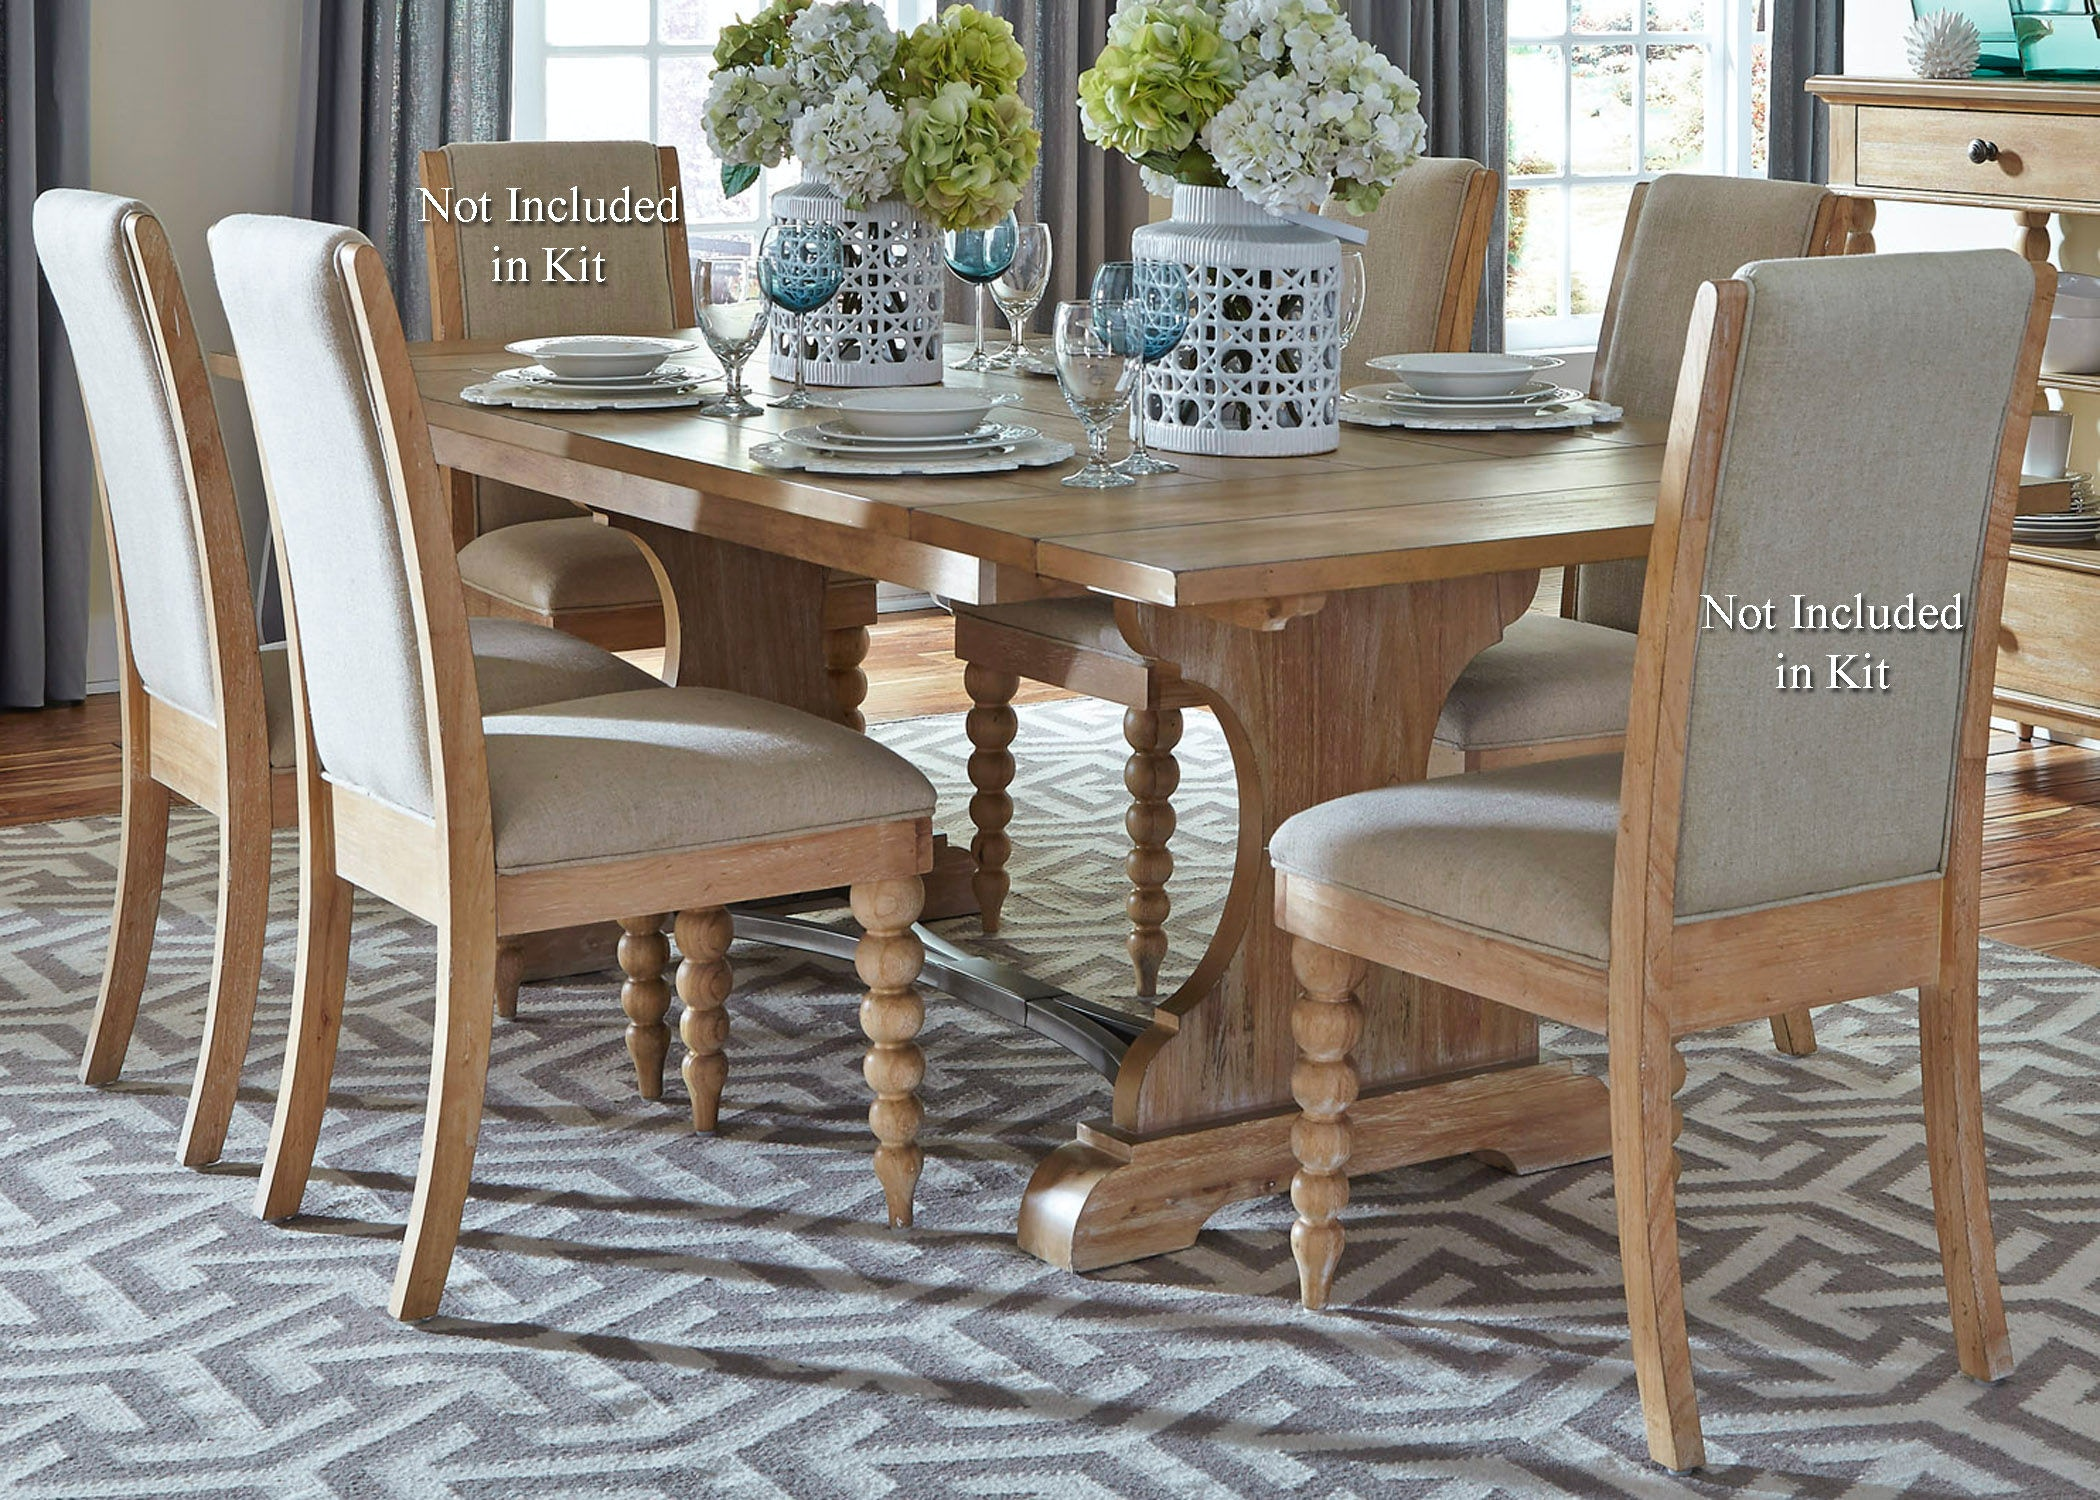 liberty furniture dining table. Liberty Furniture Round Dining Table 531-T4254